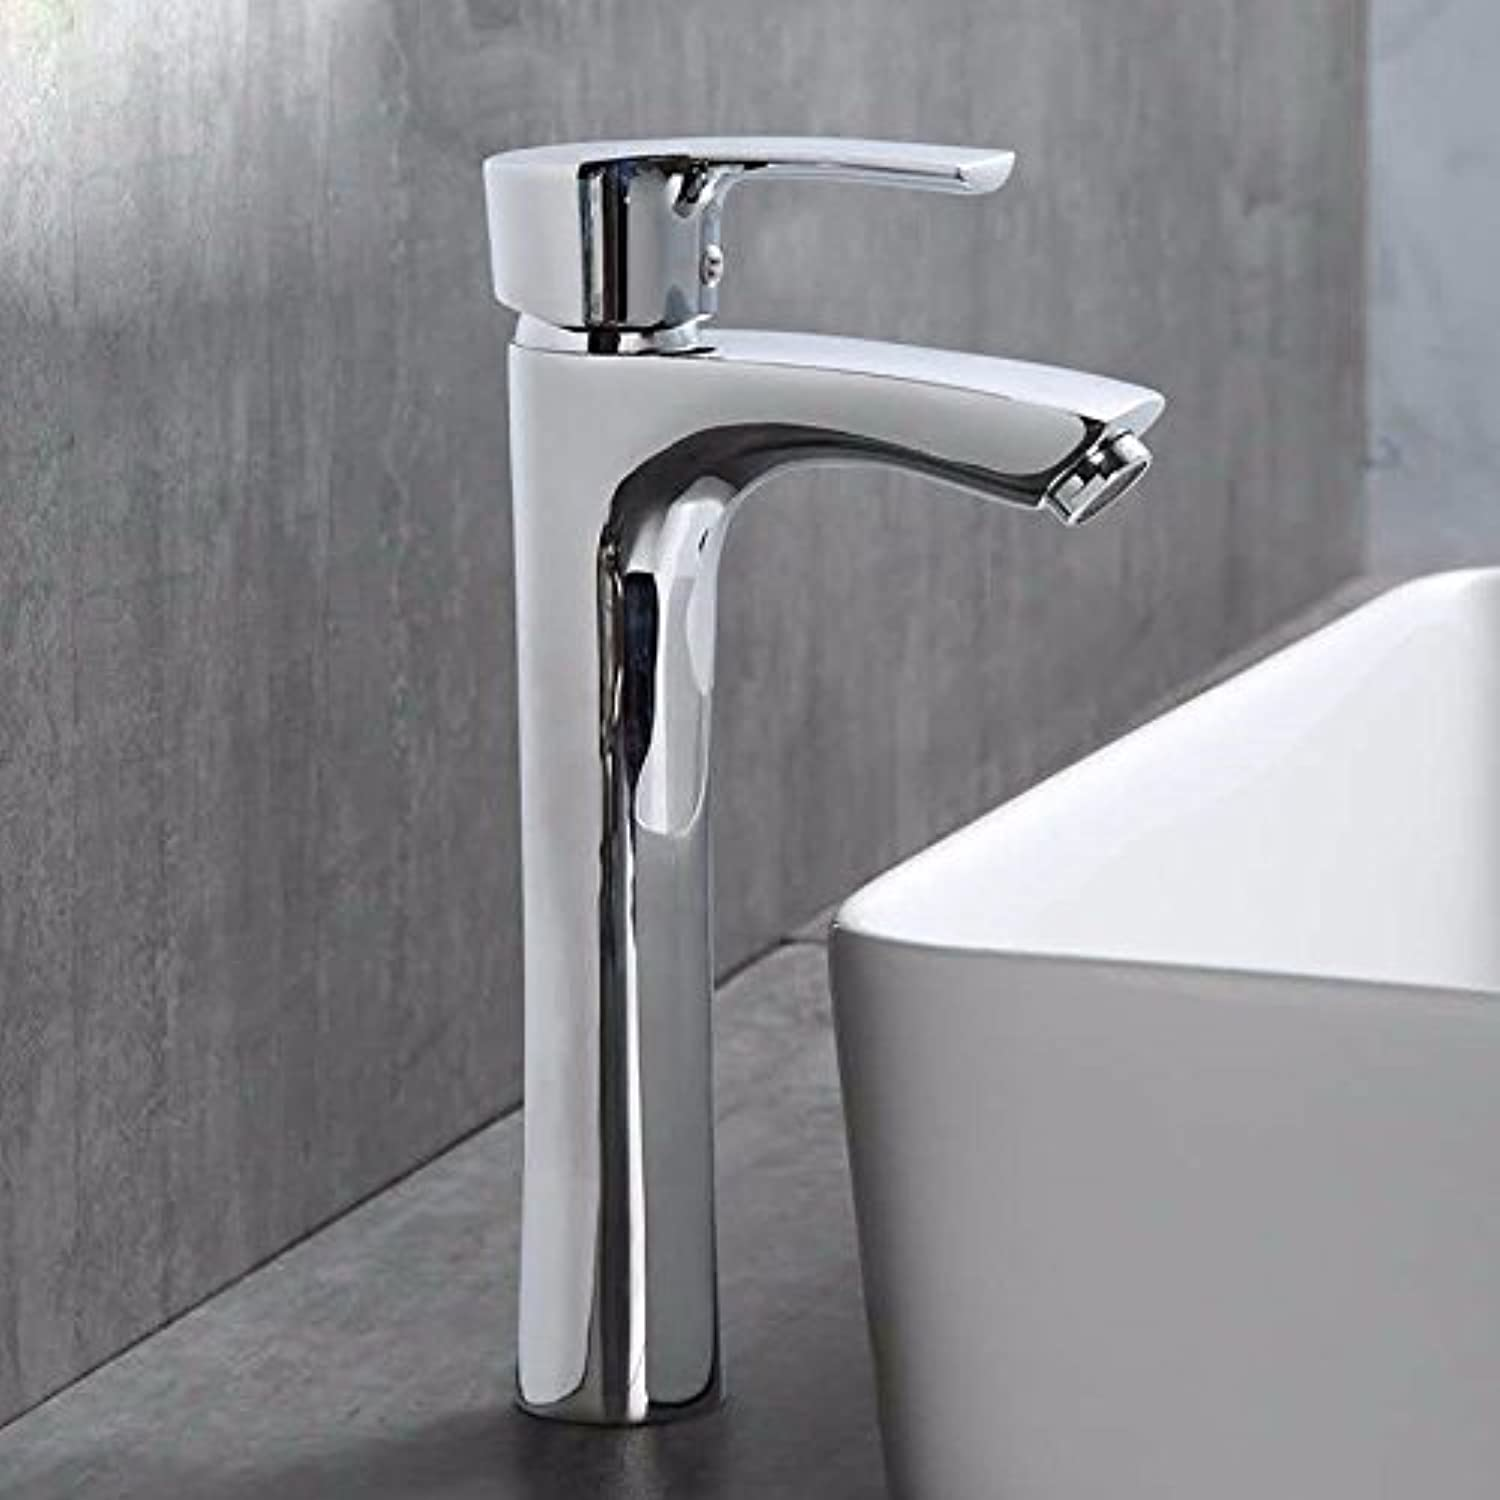 Hlluya Professional Sink Mixer Tap Kitchen Faucet All Copper Single-plus high cold and hot-water faucet